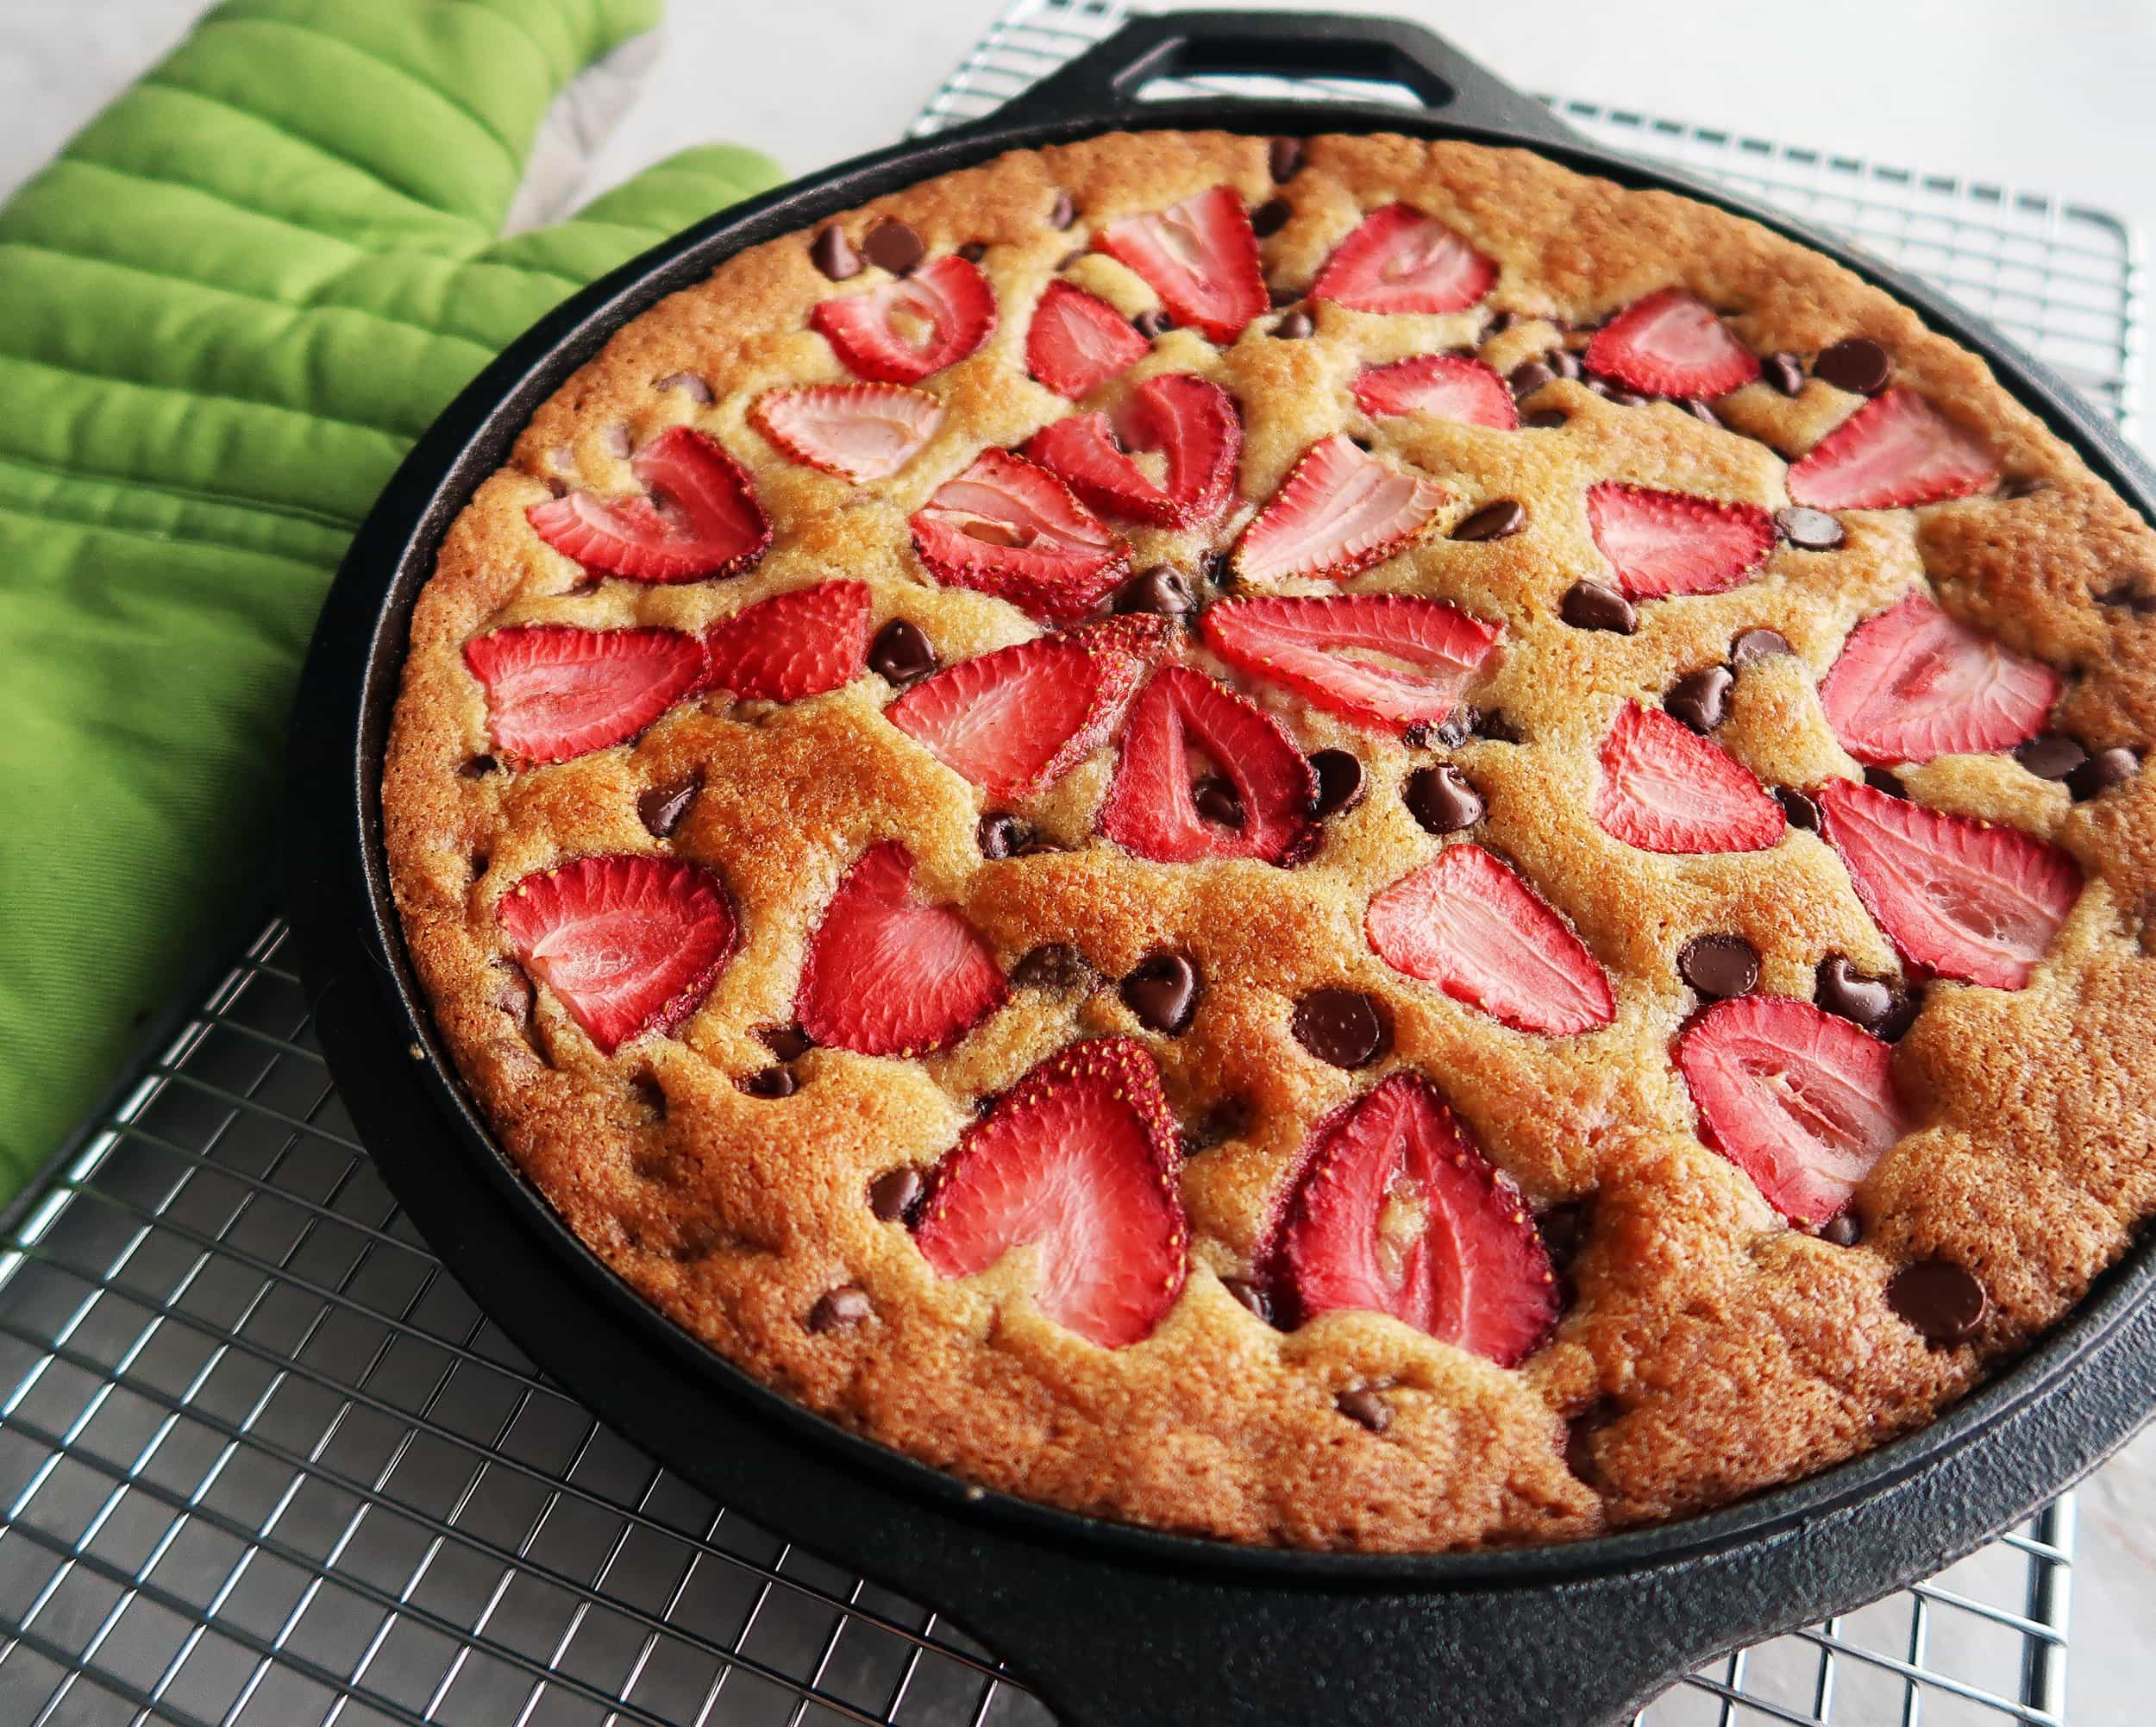 A Strawberry Chocolate Chip Skillet Cookie cooling on a rack.